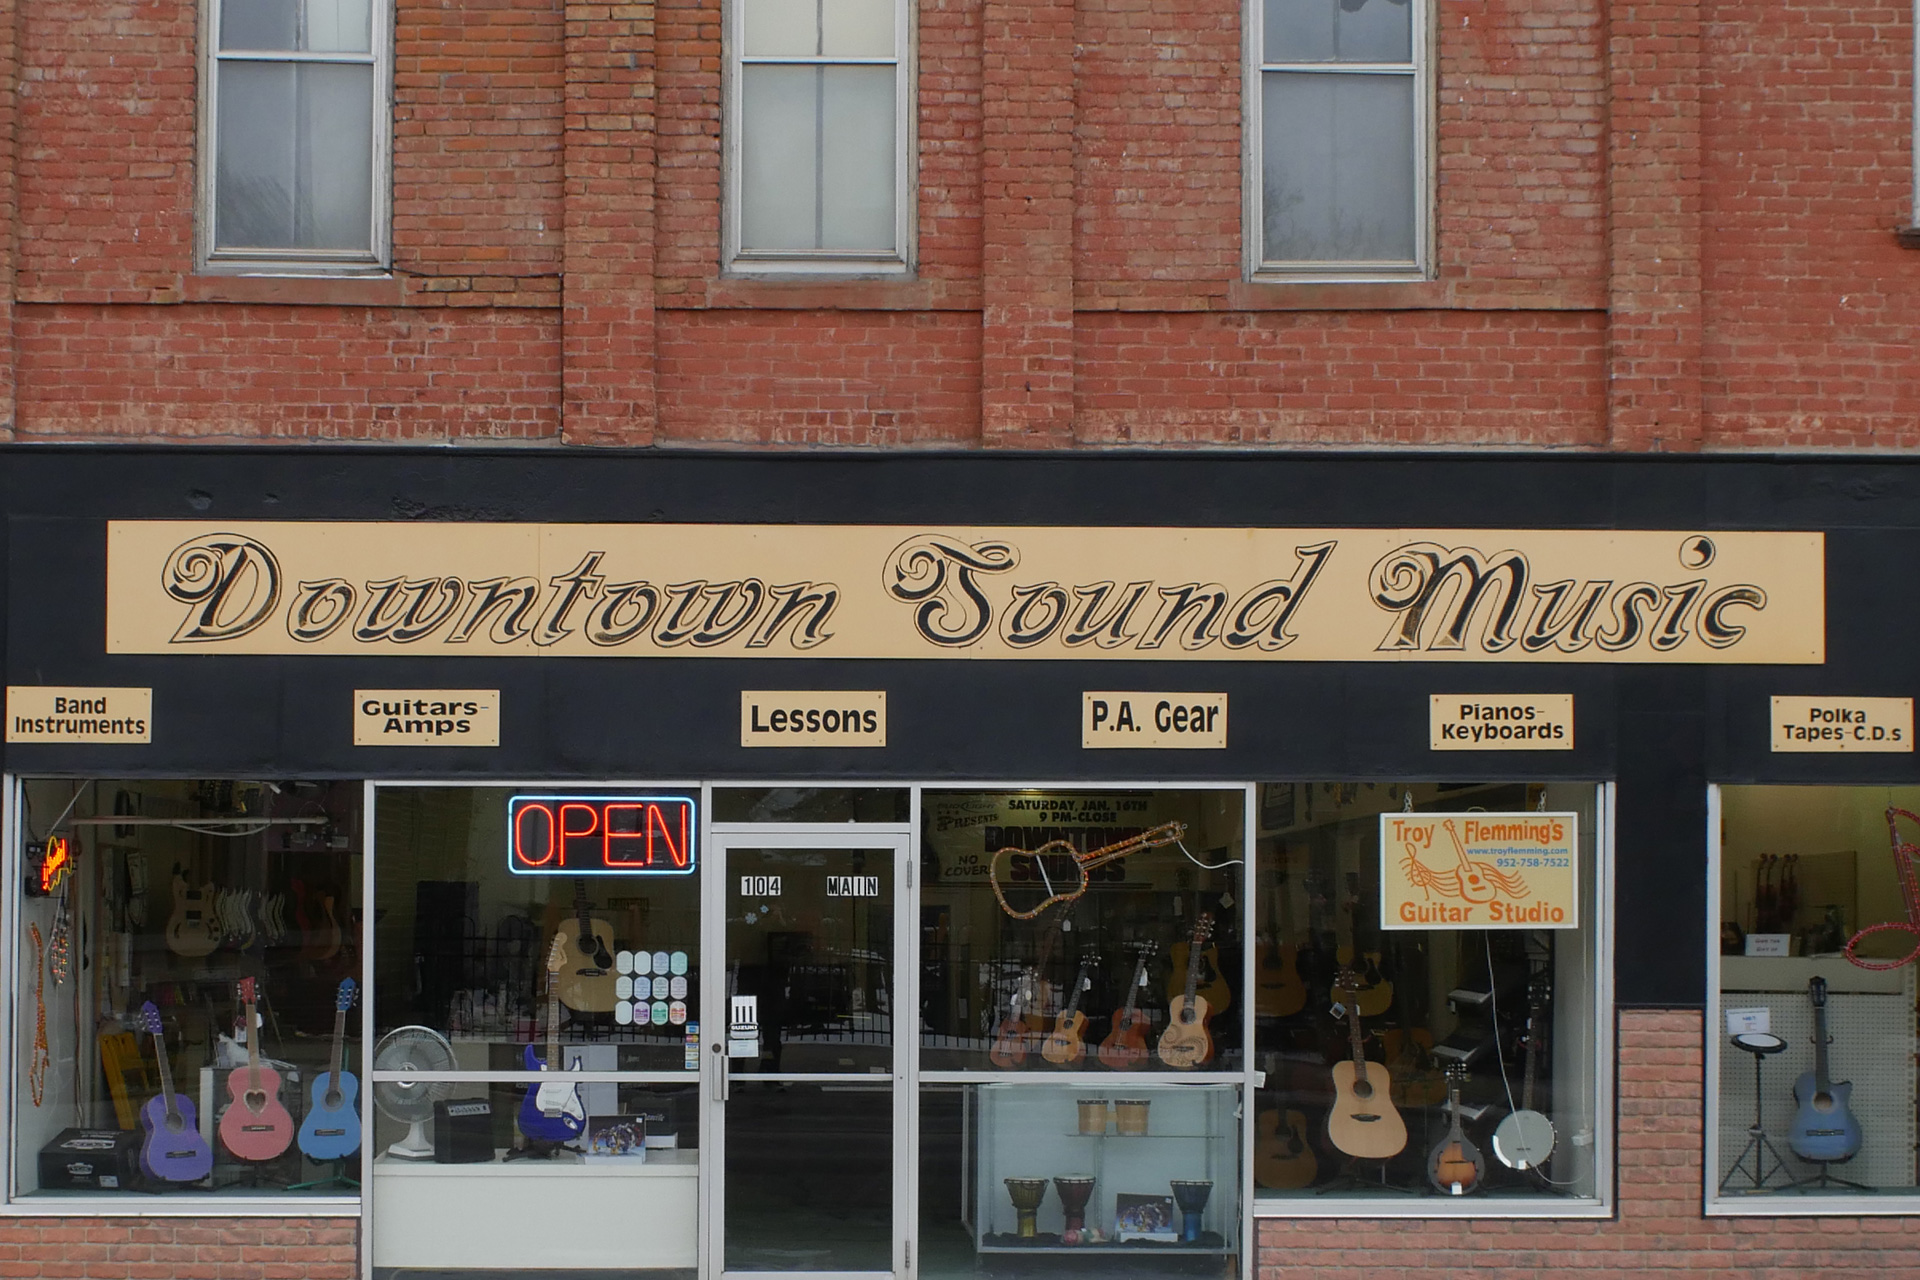 Downtown Sound Music Store